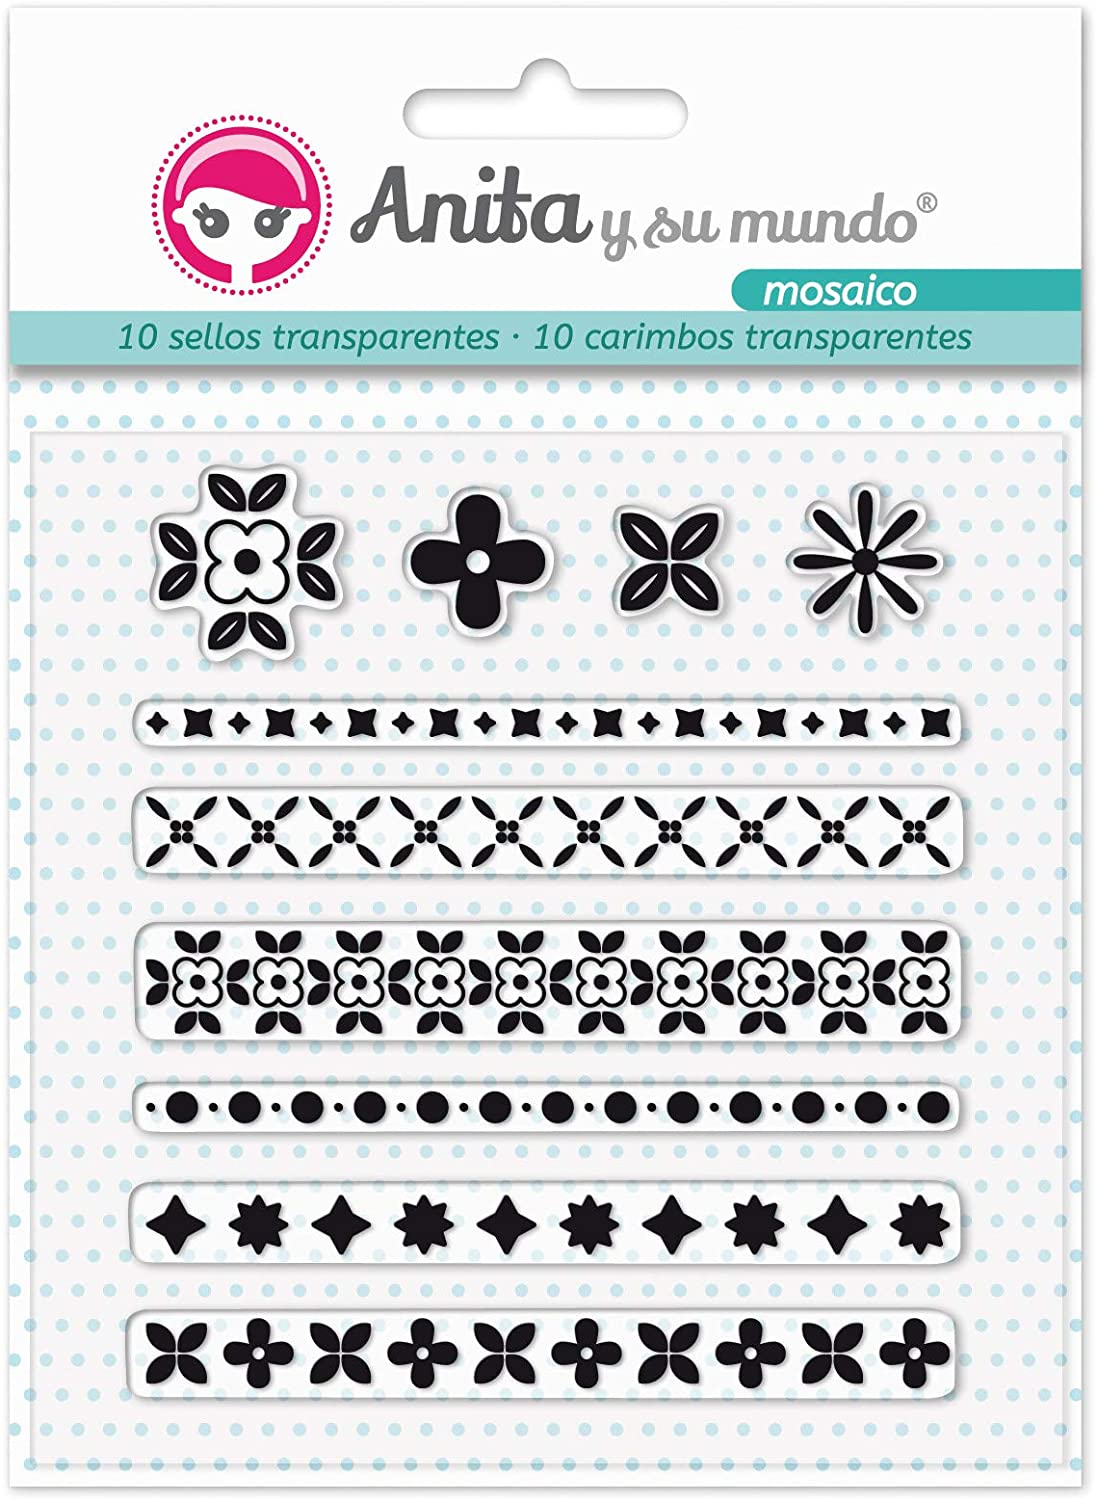 Pack of 10 16.8 x 12 cm Anita and Su Mundo 37010319 Mosaic Collection Silicone Stamps for Scrapbooking Multicoloured